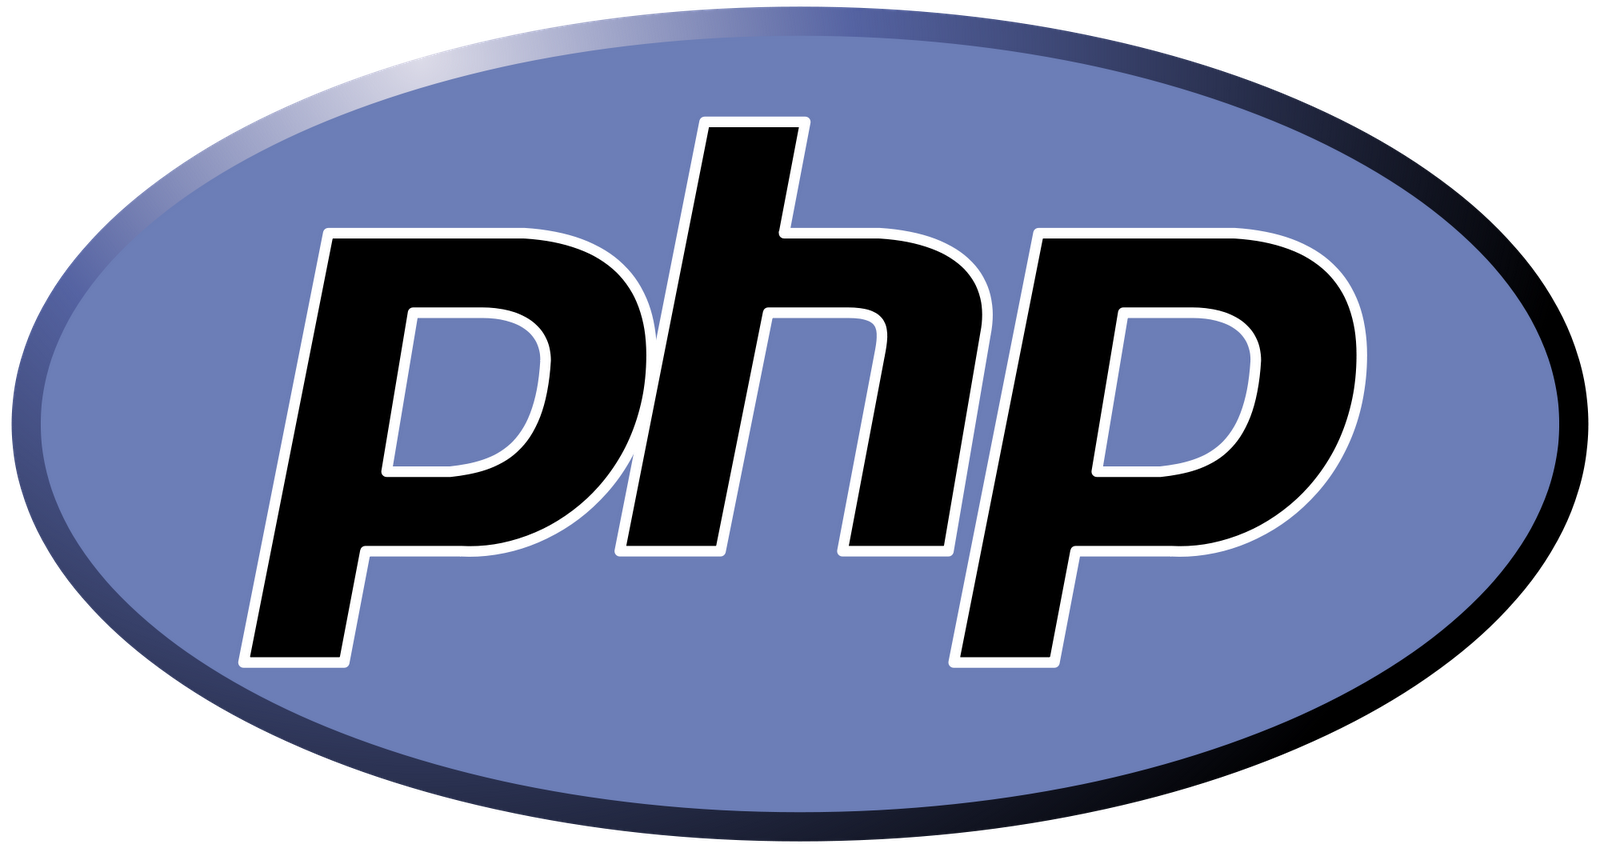 Php Buchungssystem Open Source